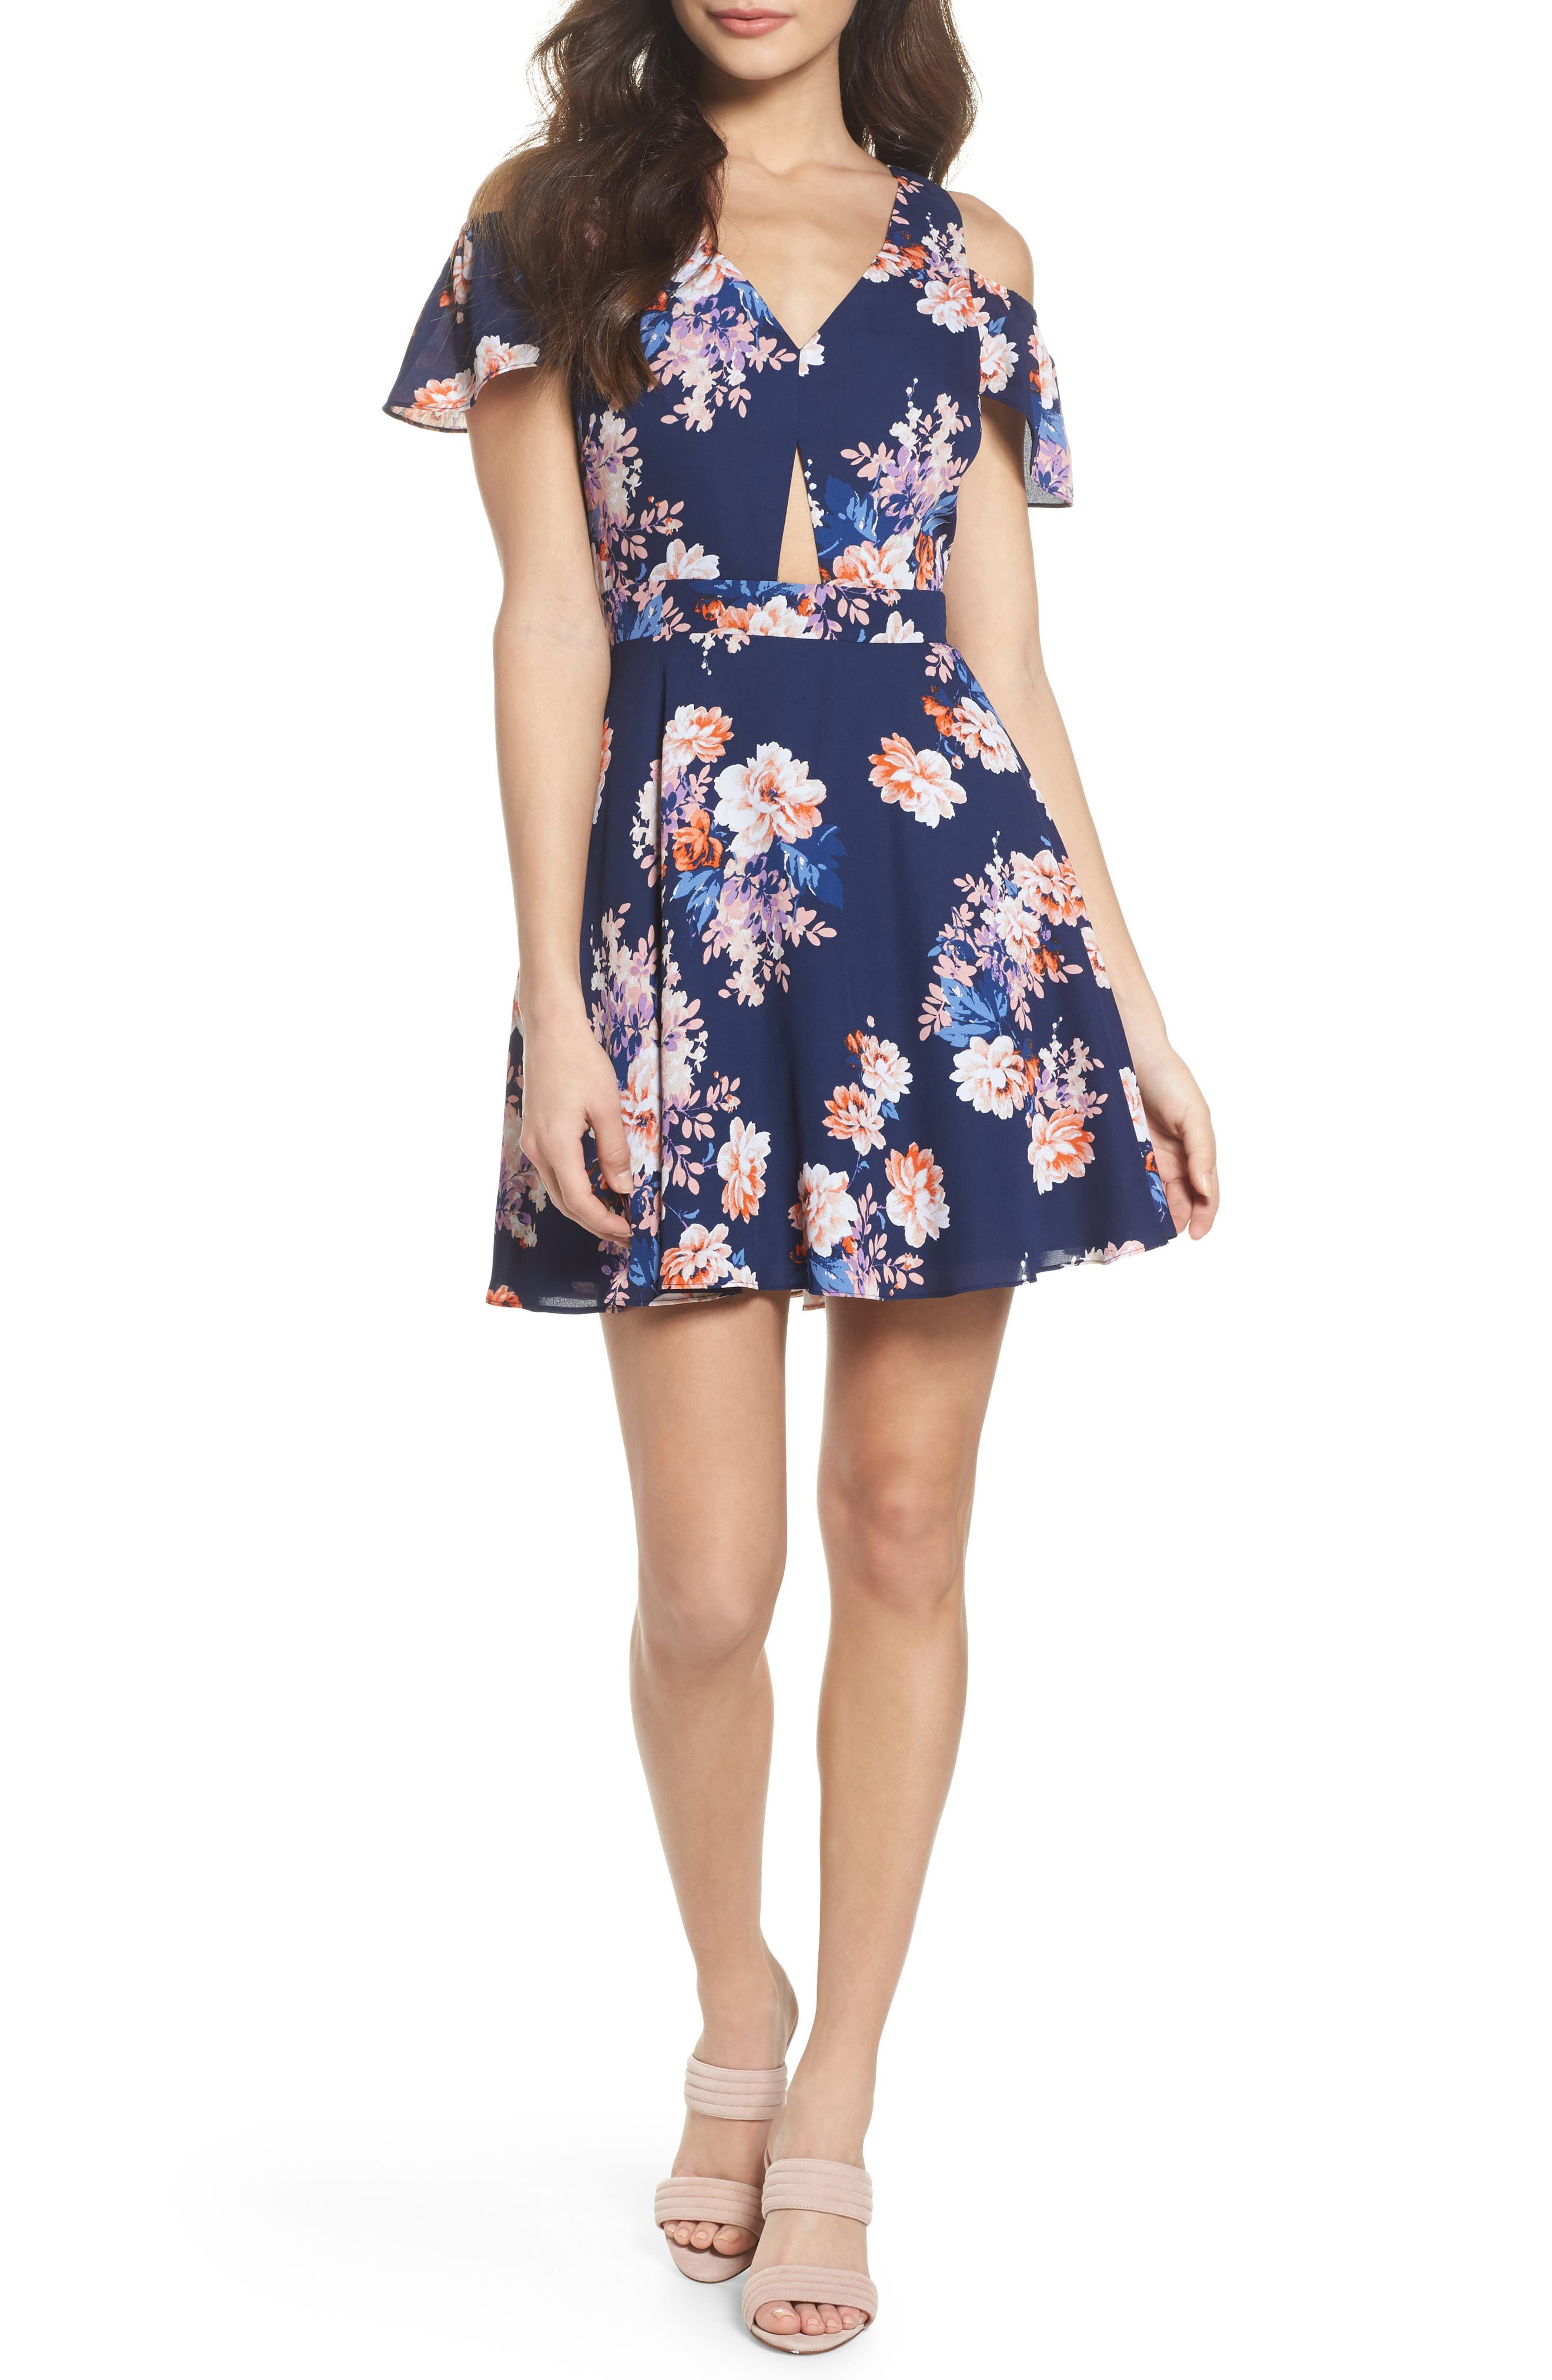 Alternate Image 1 Selected - Ali & Jay Chasing Butterflies Cold Shoulder Fit & Flare Dress (Nordstrom Exclusive)